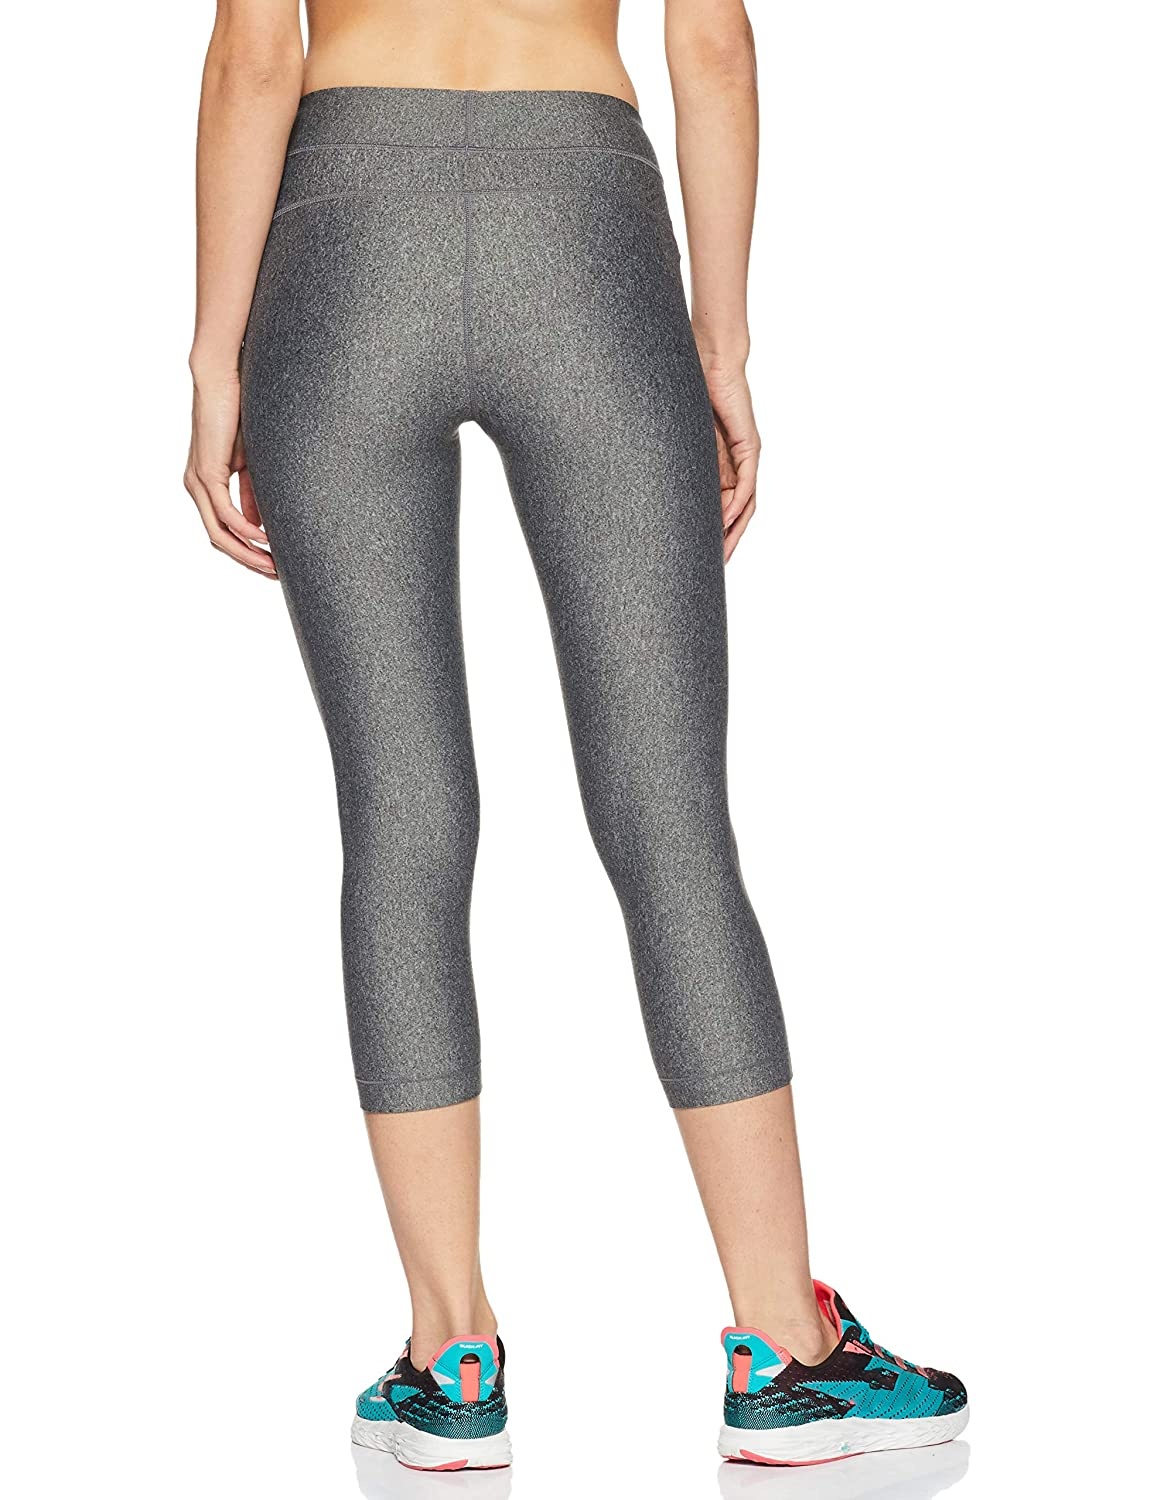 ed0a618c7575f Under Armour HeatGear Armour Capri Women's Sports Leggings: Amazon.in:  Clothing & Accessories